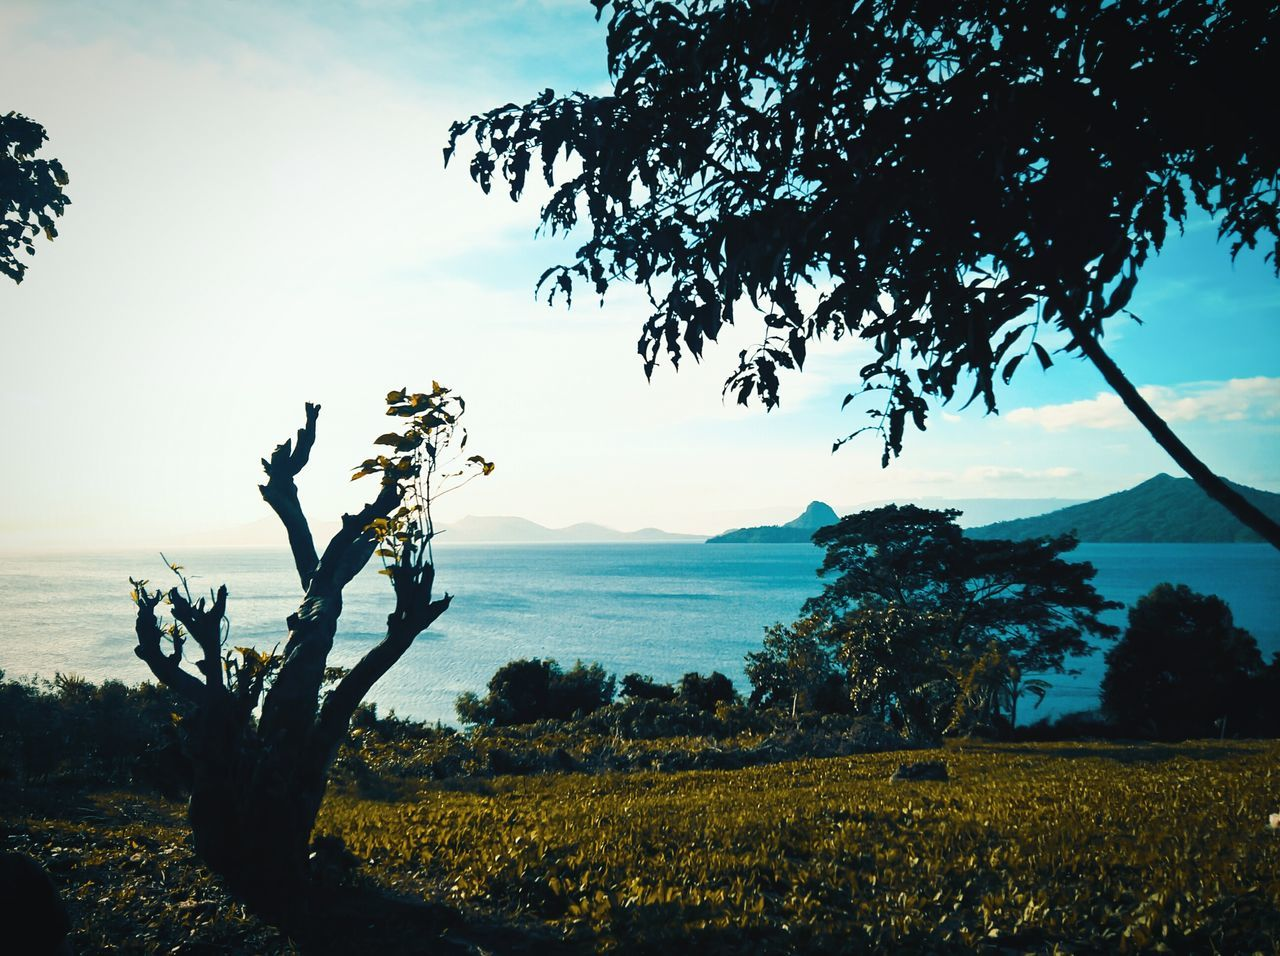 Taal Lake relaxing view. PhonePhotography TaalLake  Phone Photography Taal Volcano Tree Plant Landscape Horizon Over Water Batangas Philippines Orangeandteal Naturebeauty Beauty In Nature Philippines ❤️ Lumia640xl